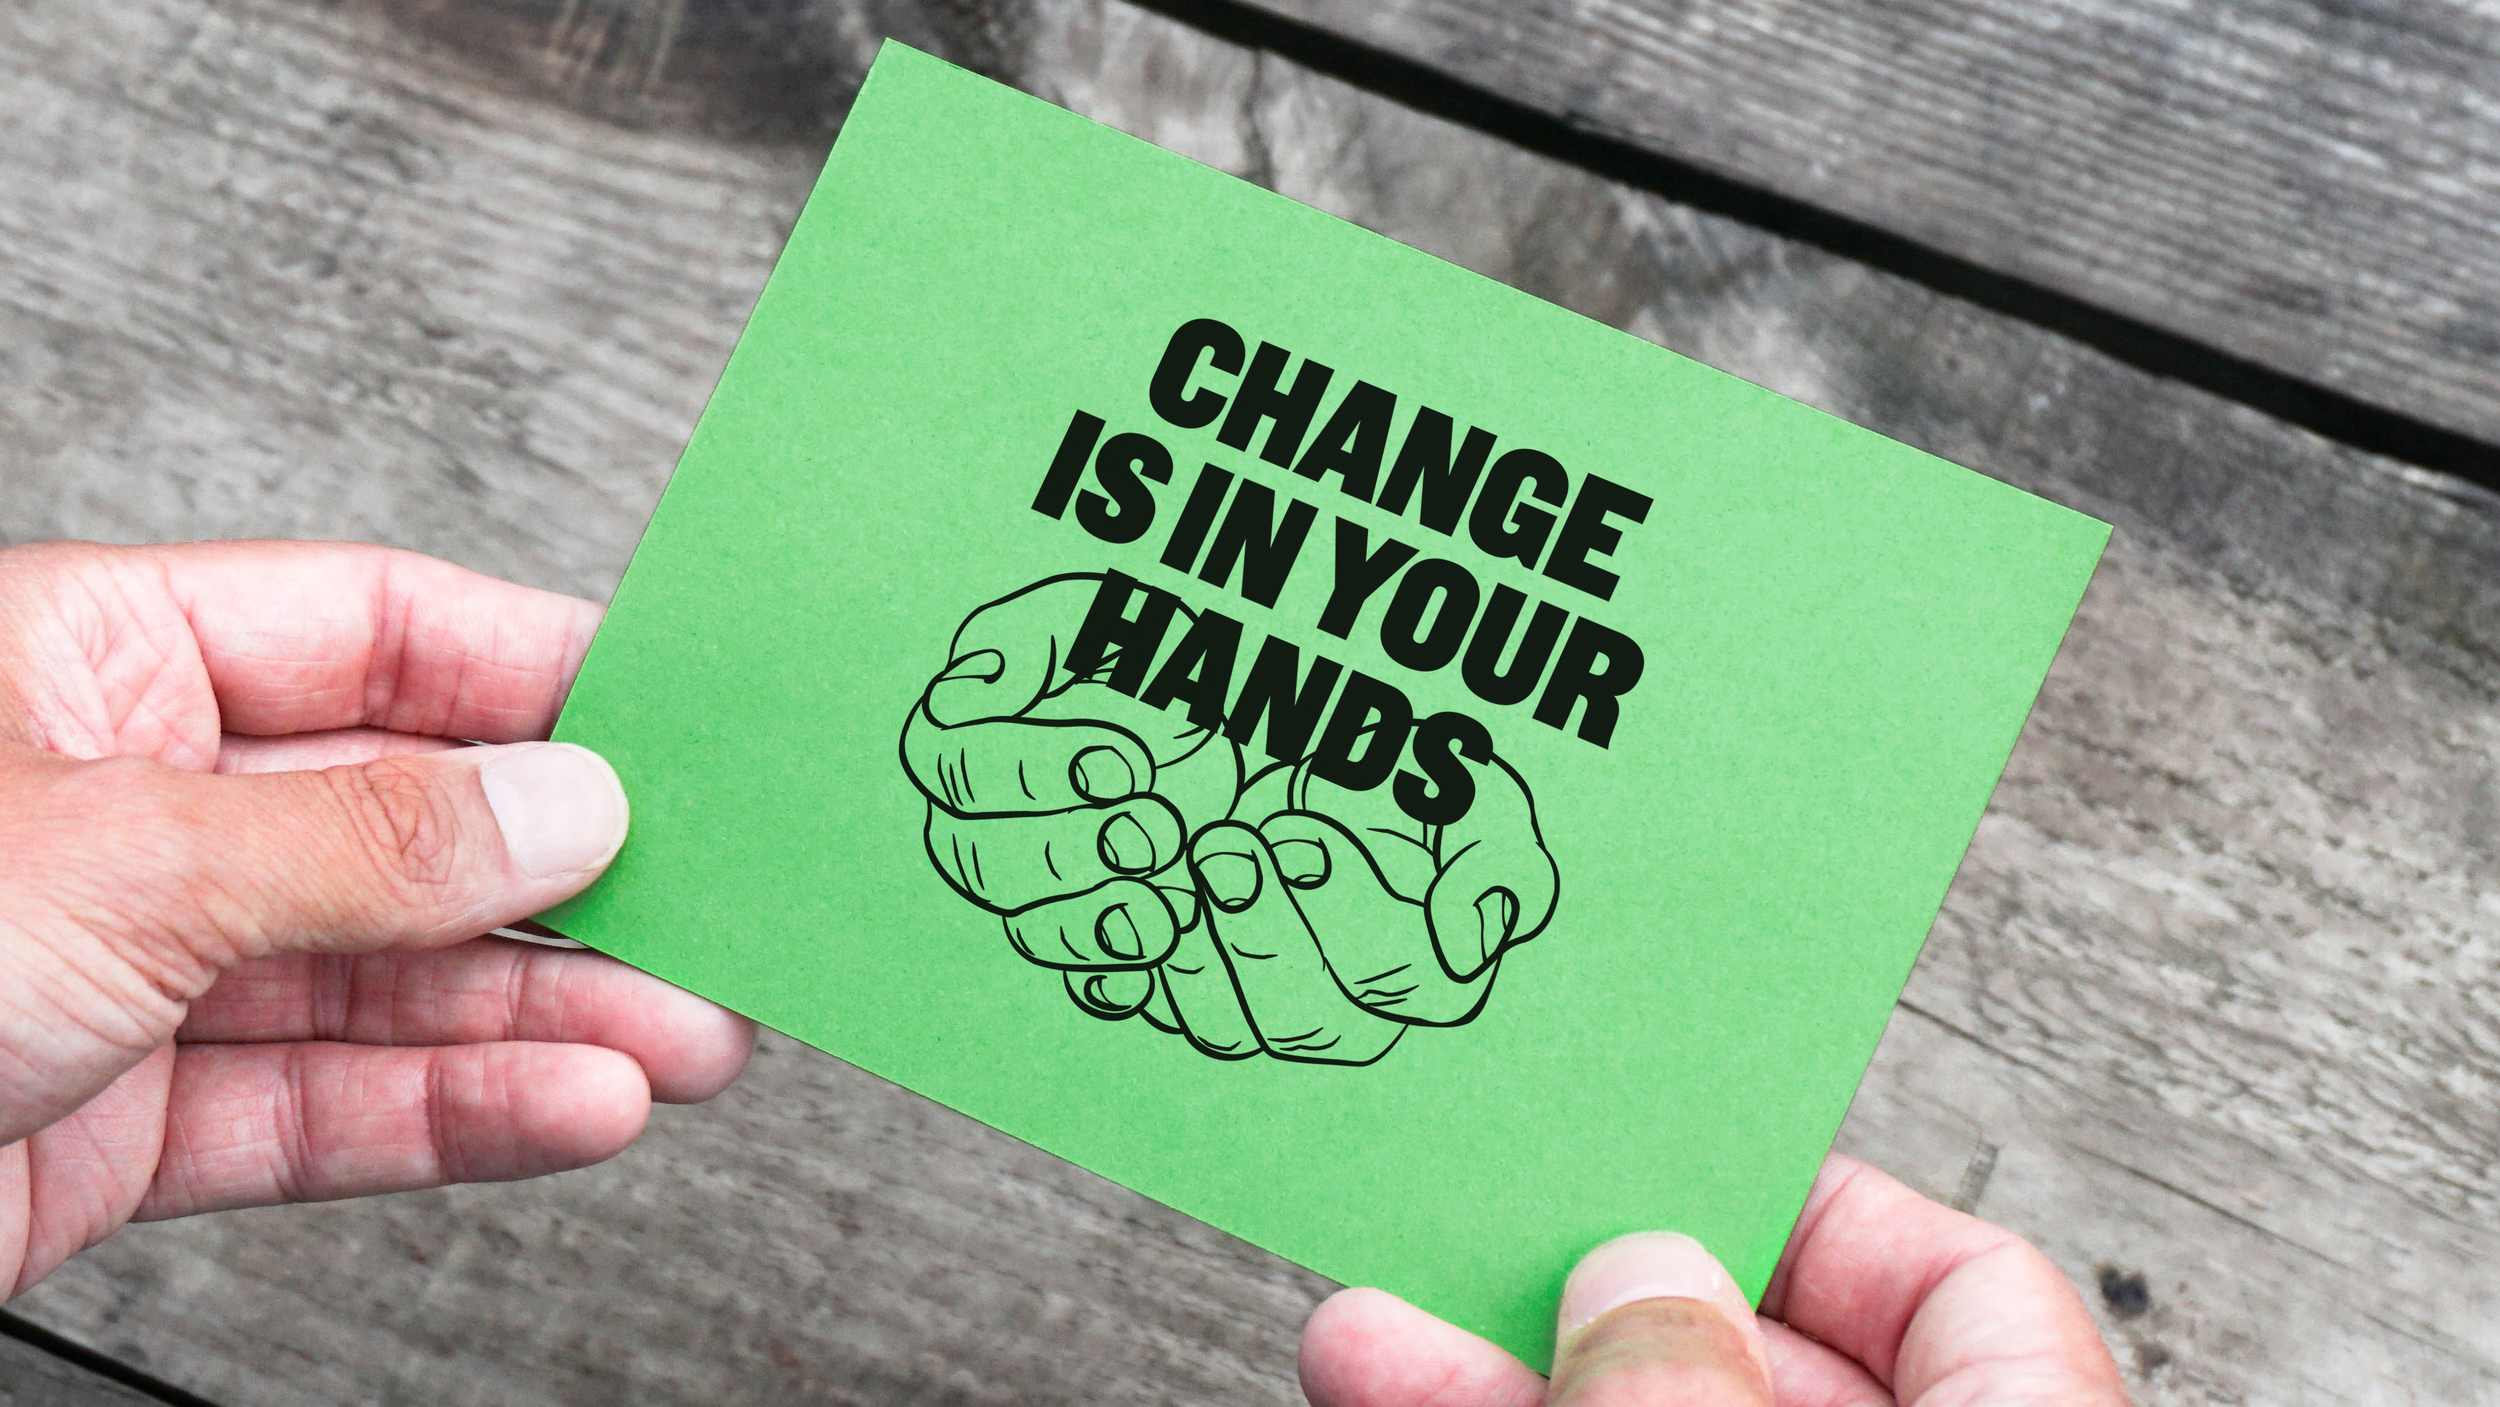 CHANGE IS IN YOUR HANDS 2.png